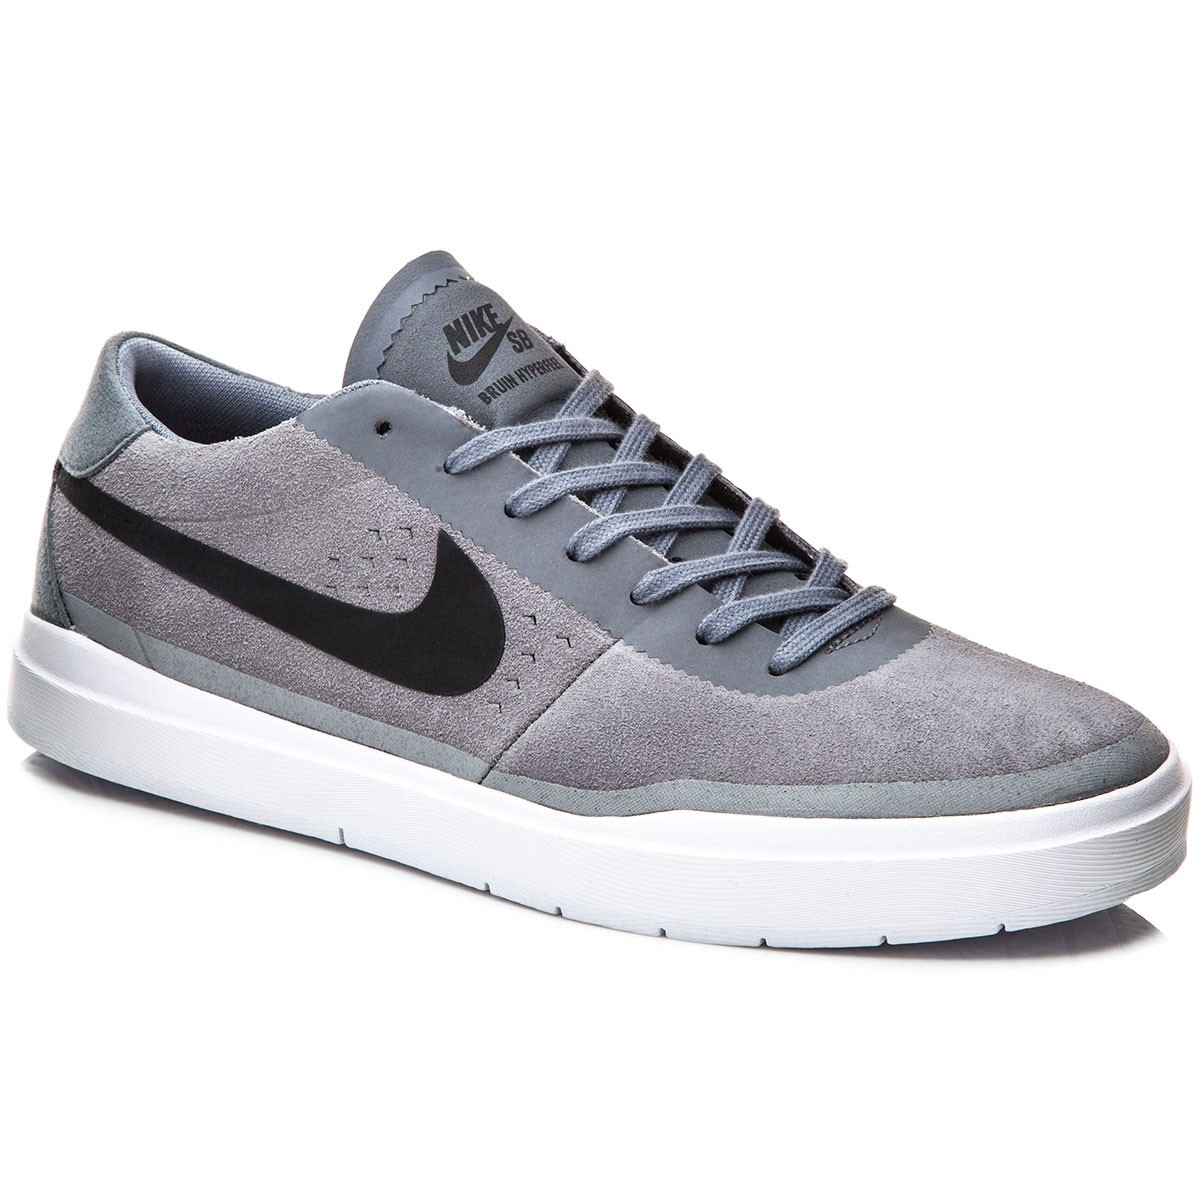 finest selection 5ff6c d0bf1 Nike SB Bruin Hyperfeel Shoes - GreyWhiteBlack - 5.0